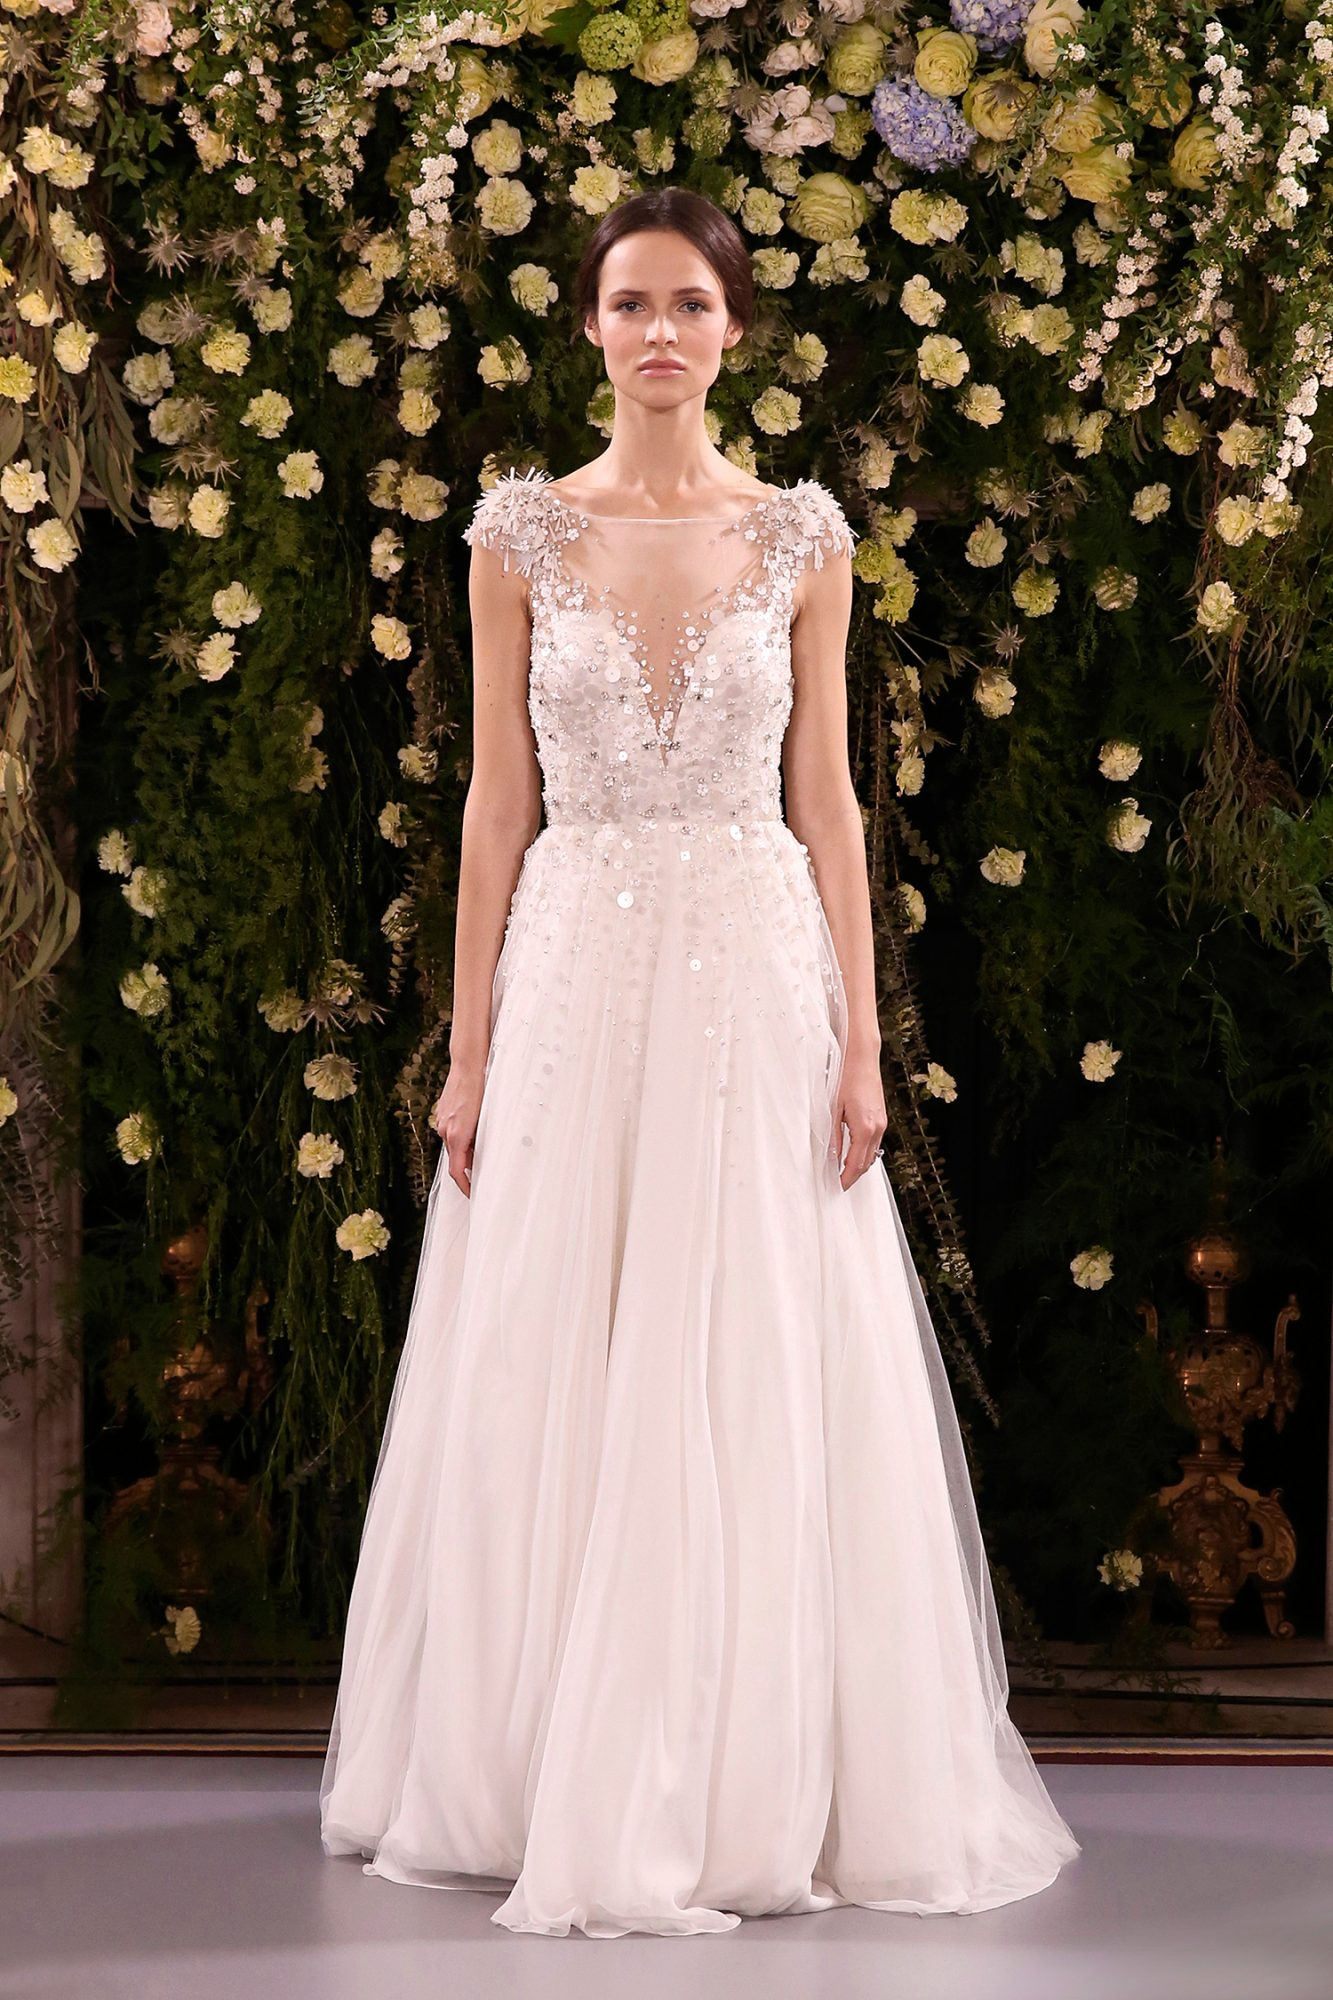 jenny packham wedding dress spring 2019 illusion neck shoulder embellishments